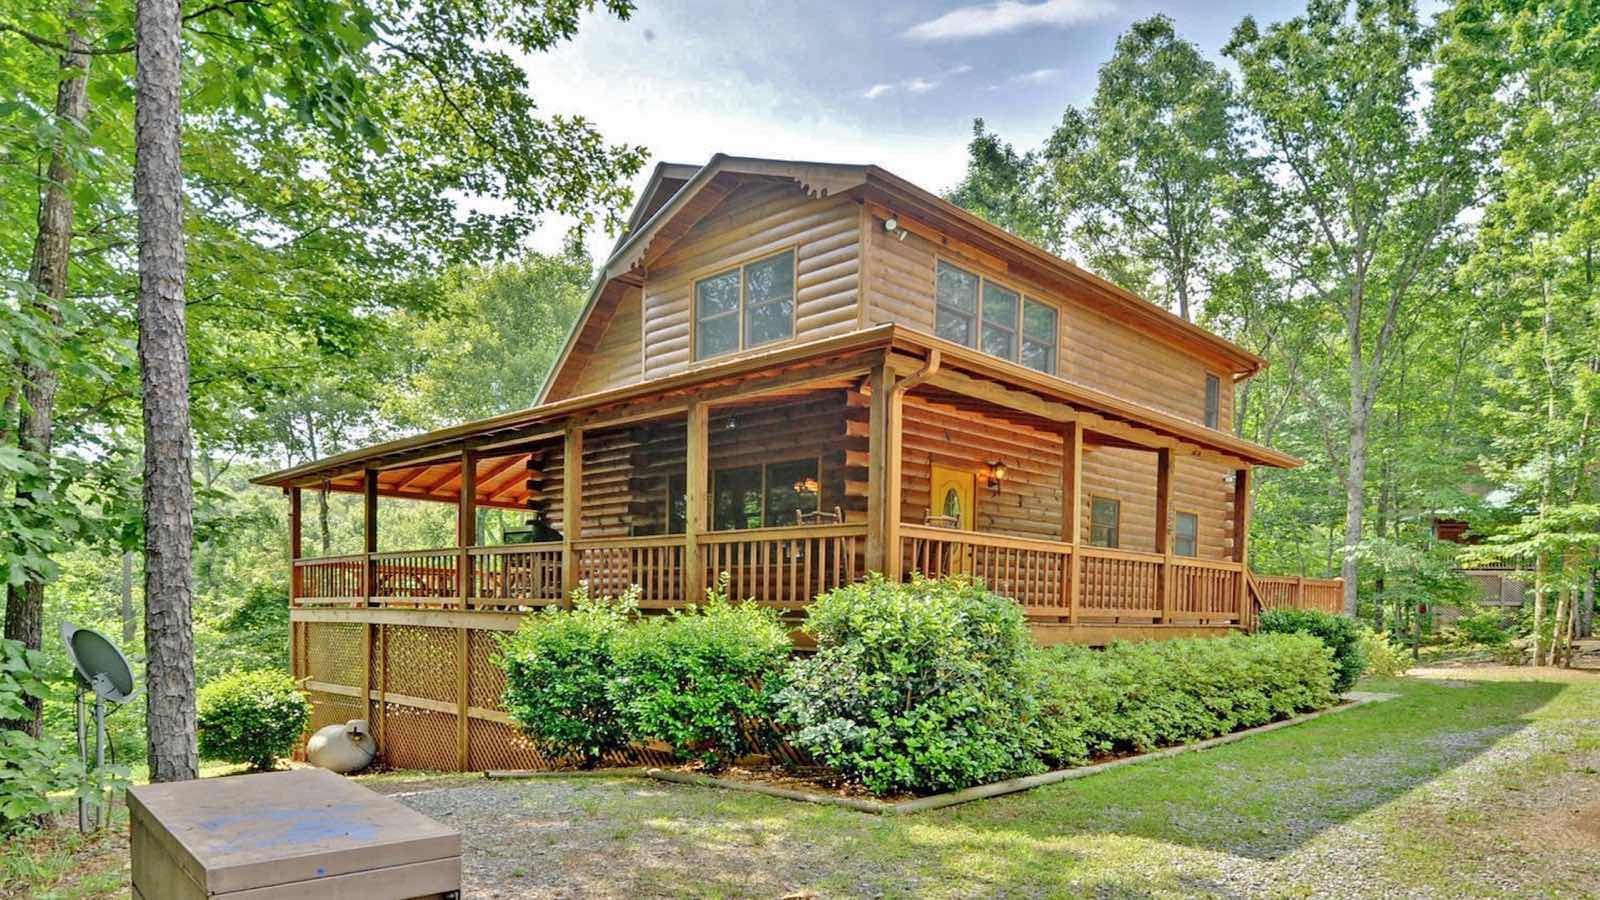 My blue ridge travel guide for Blue ridge ga cabins for rent